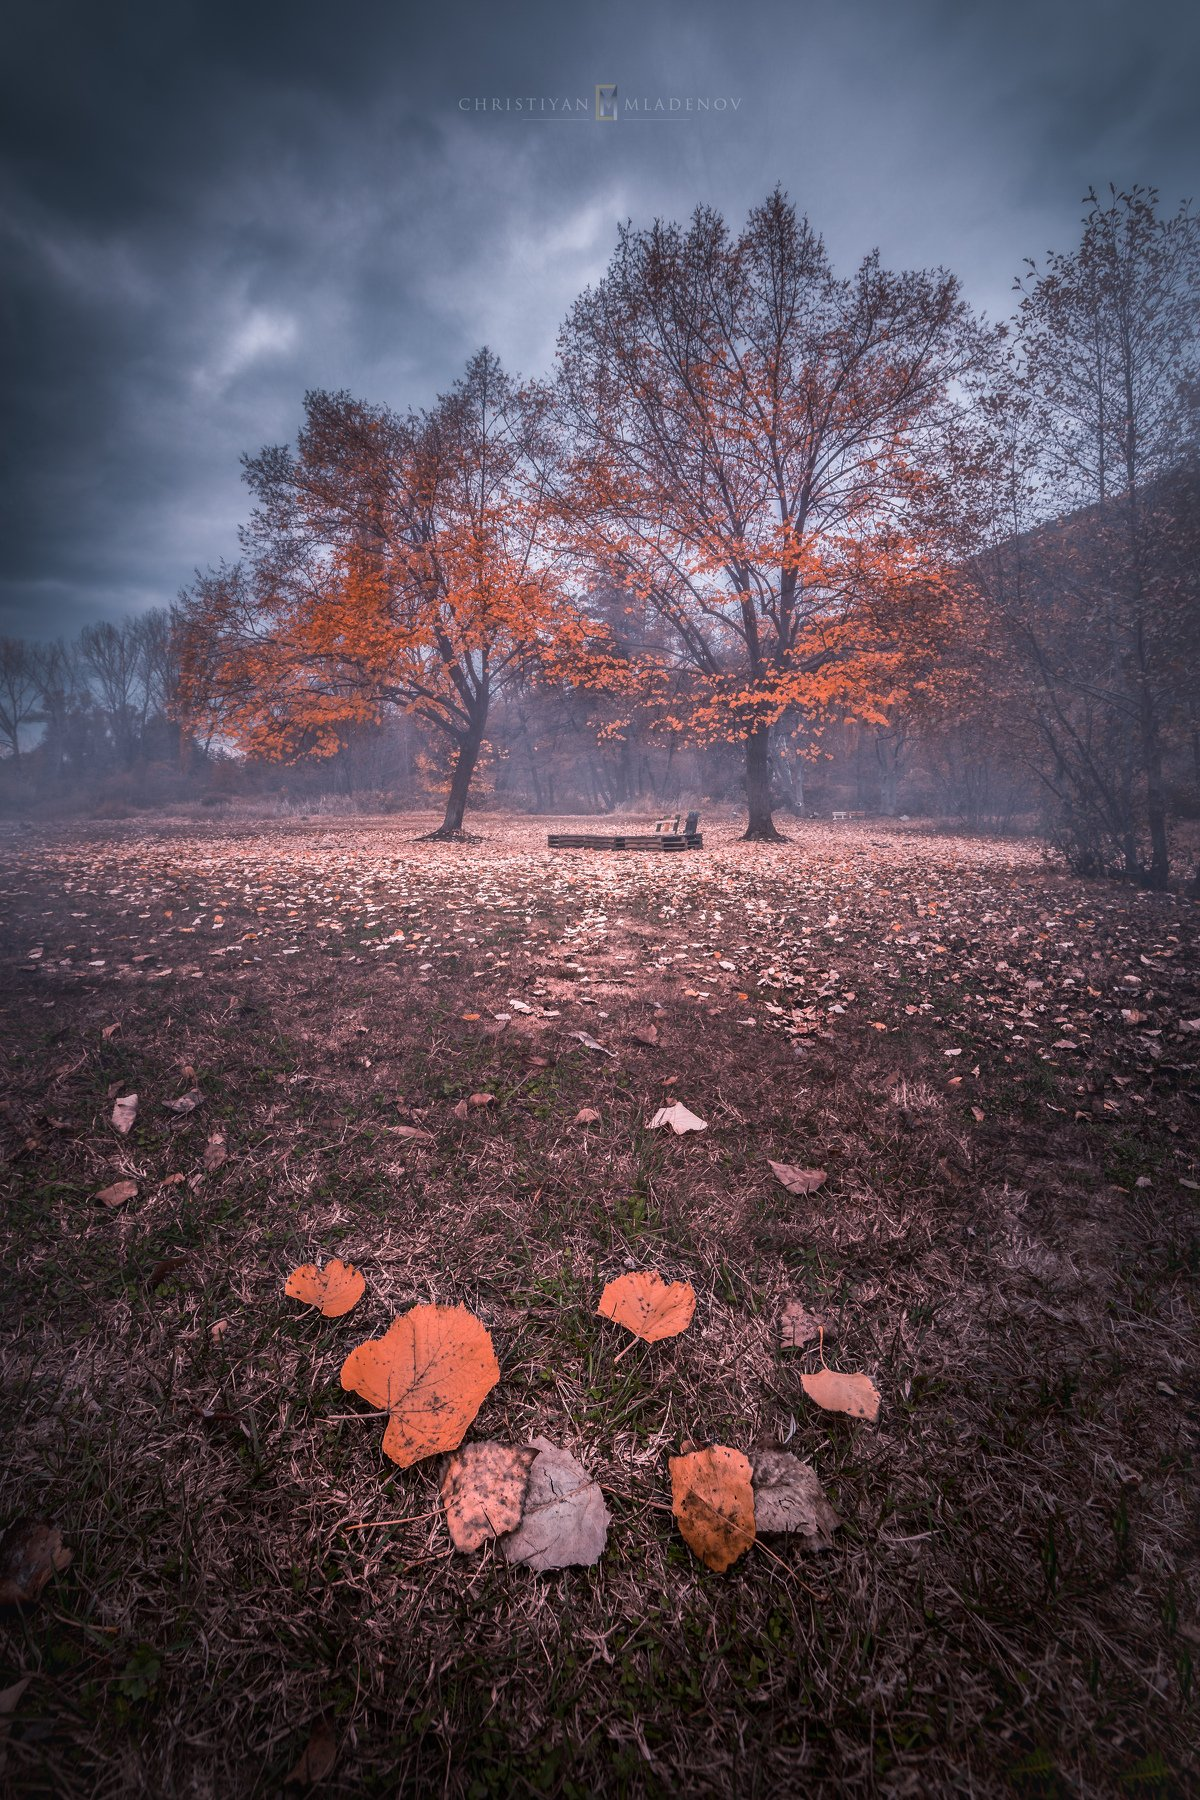 autumn, fall, landscape, trees, forest, woods, bulgaria, colors, nature, fog, mist, rain, october, sky, clouds, Кристиян Младенов